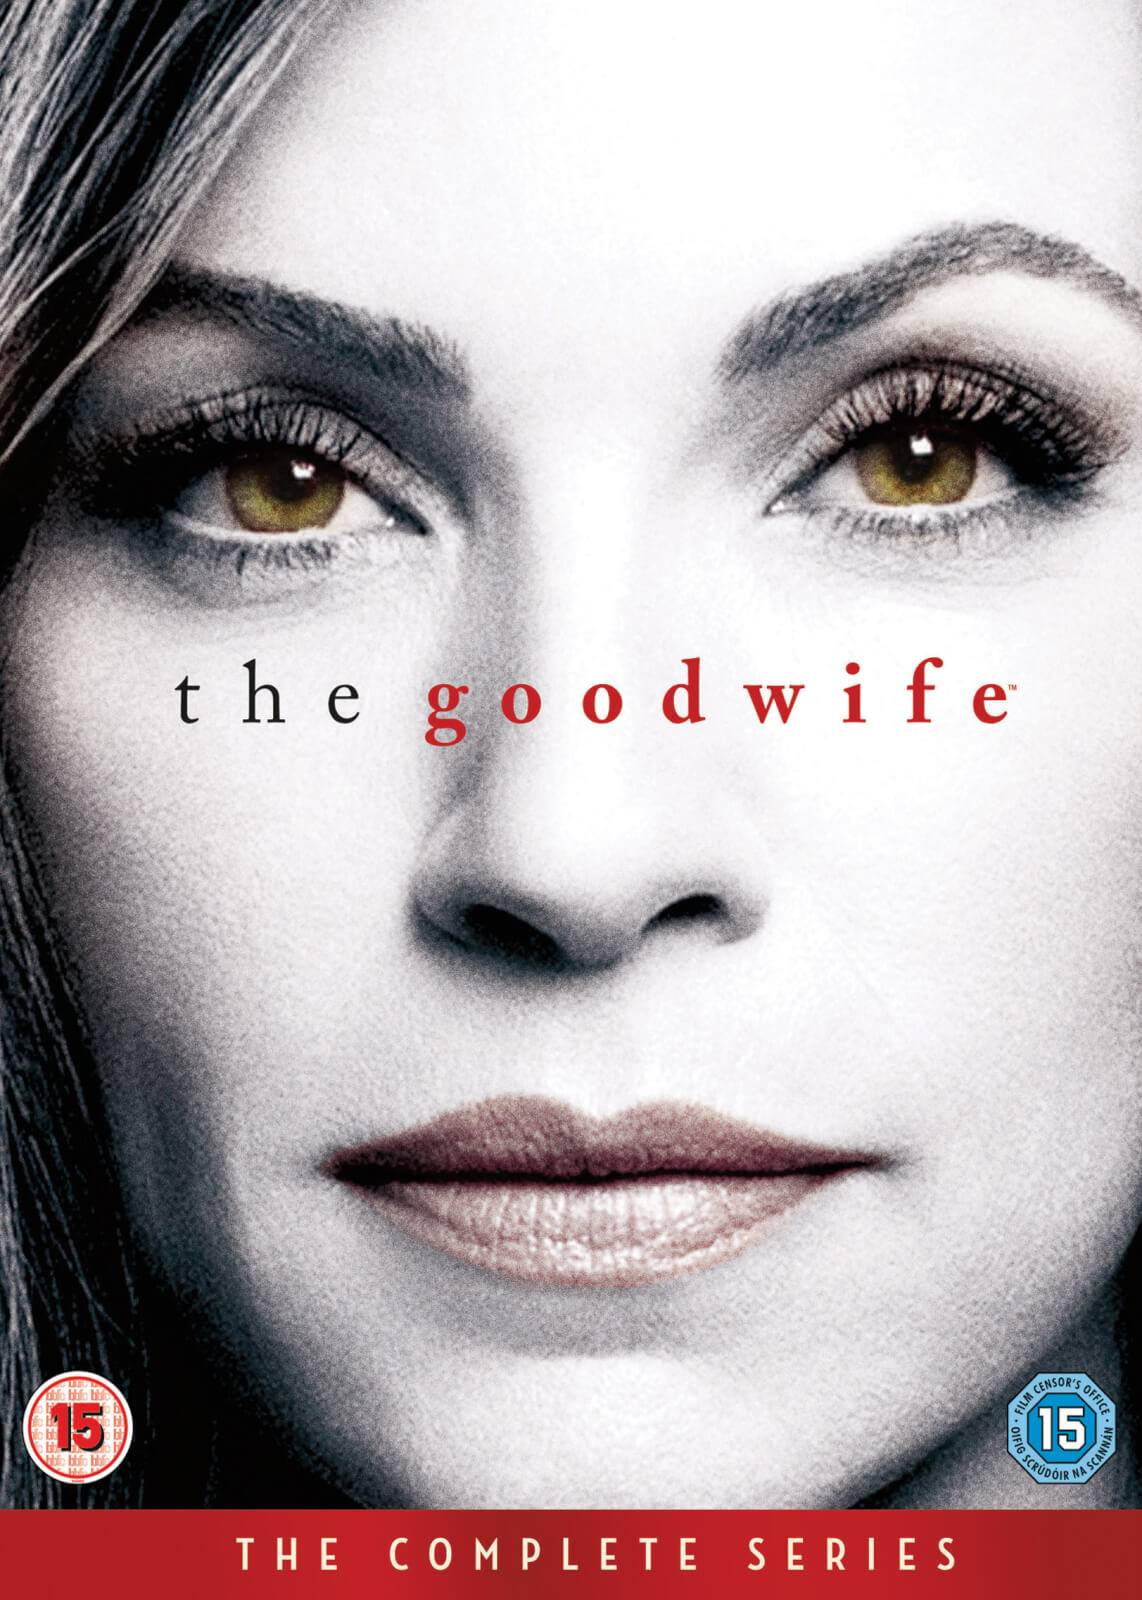 Universal Pictures The Good Wife: Season 1-7 Boxset